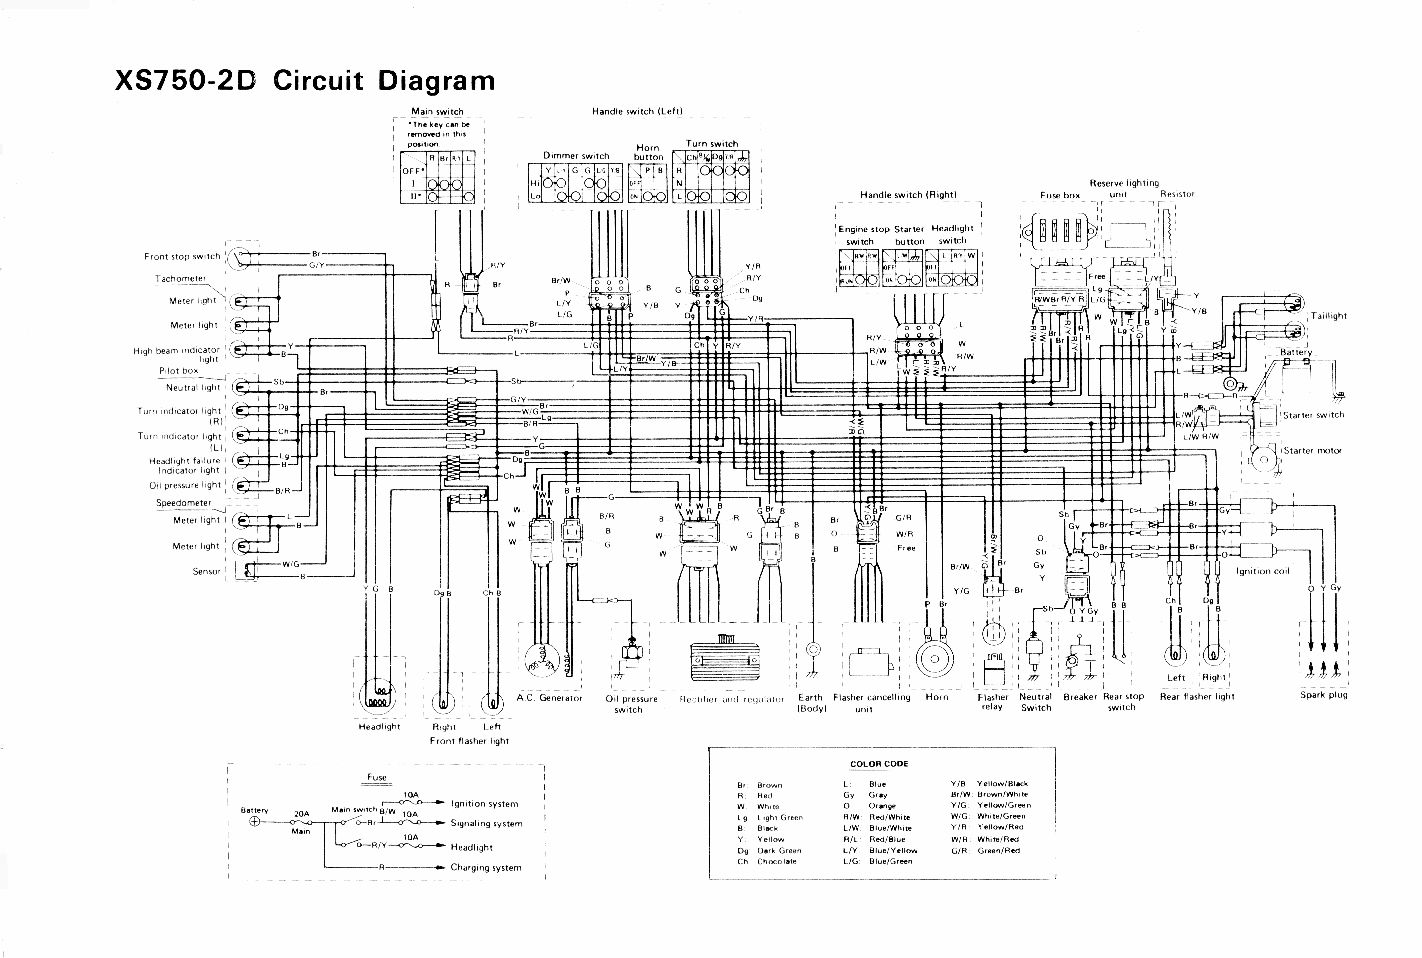 Yamaha Dt400 Wiring Diagram - Go Wiring Diagram on yamaha schematics, yamaha motor diagram, suzuki quadrunner 160 parts diagram, yamaha ignition diagram, yamaha steering diagram, yamaha wiring code, yamaha solenoid diagram,